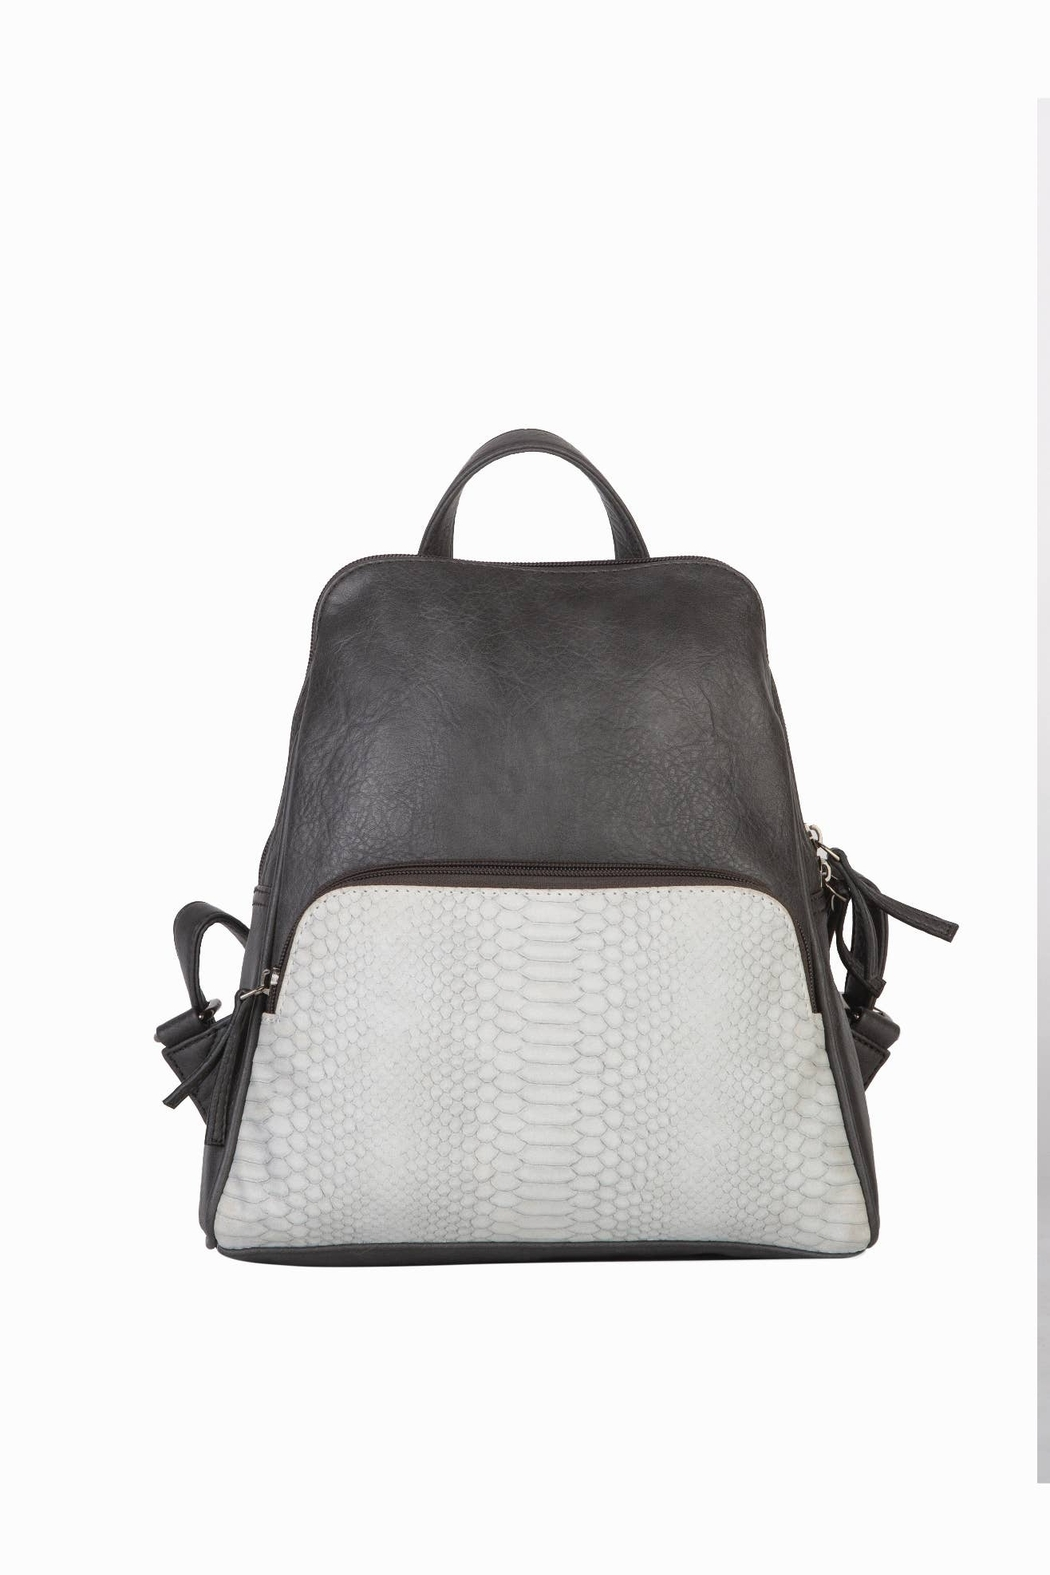 Mona B Vale Vegan Leather Convertible Backpack - Main Image